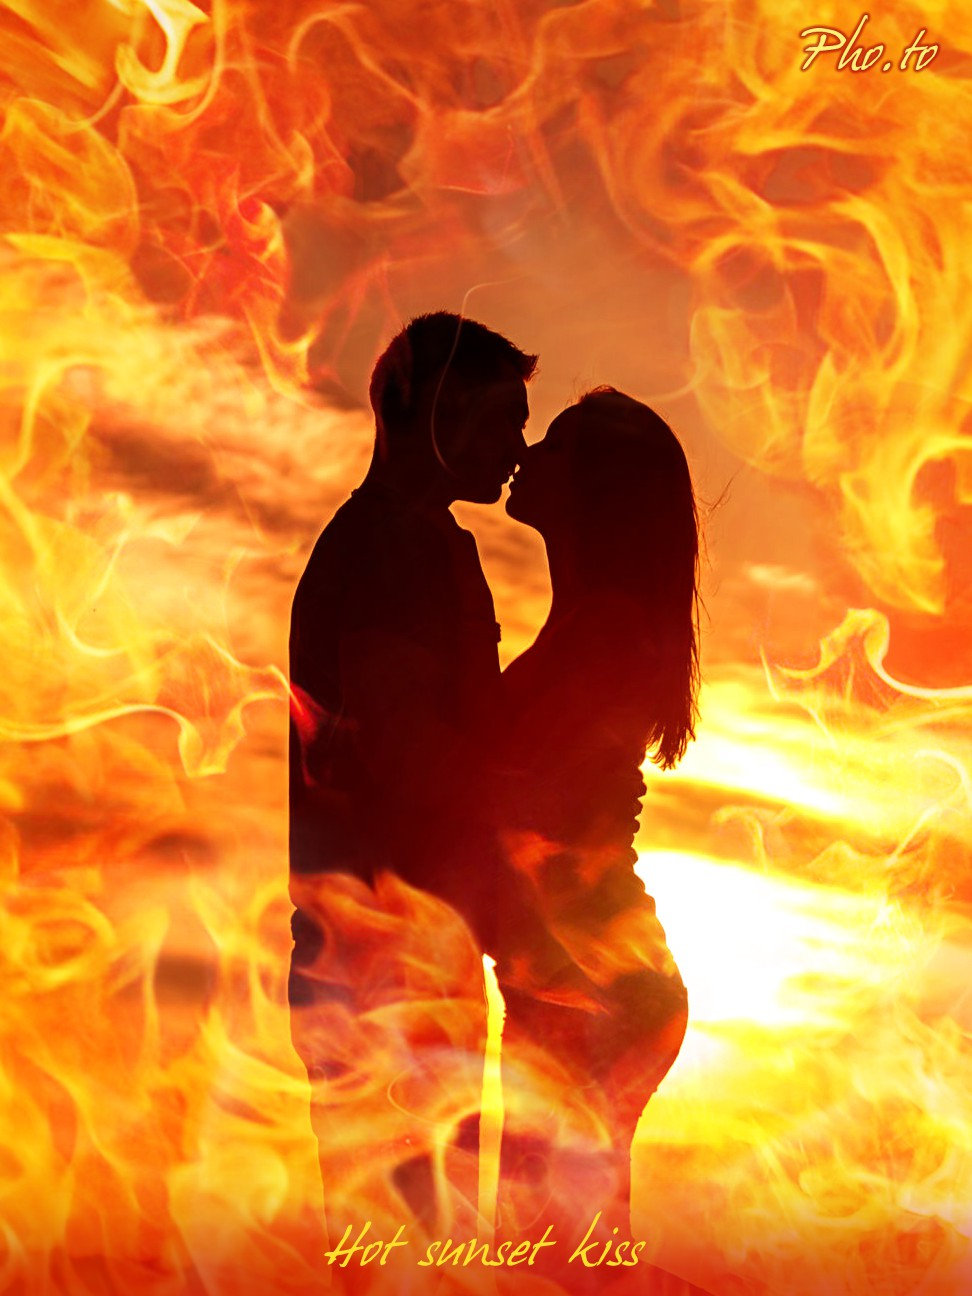 Frame your photo with fire flames  Make it burning and hot